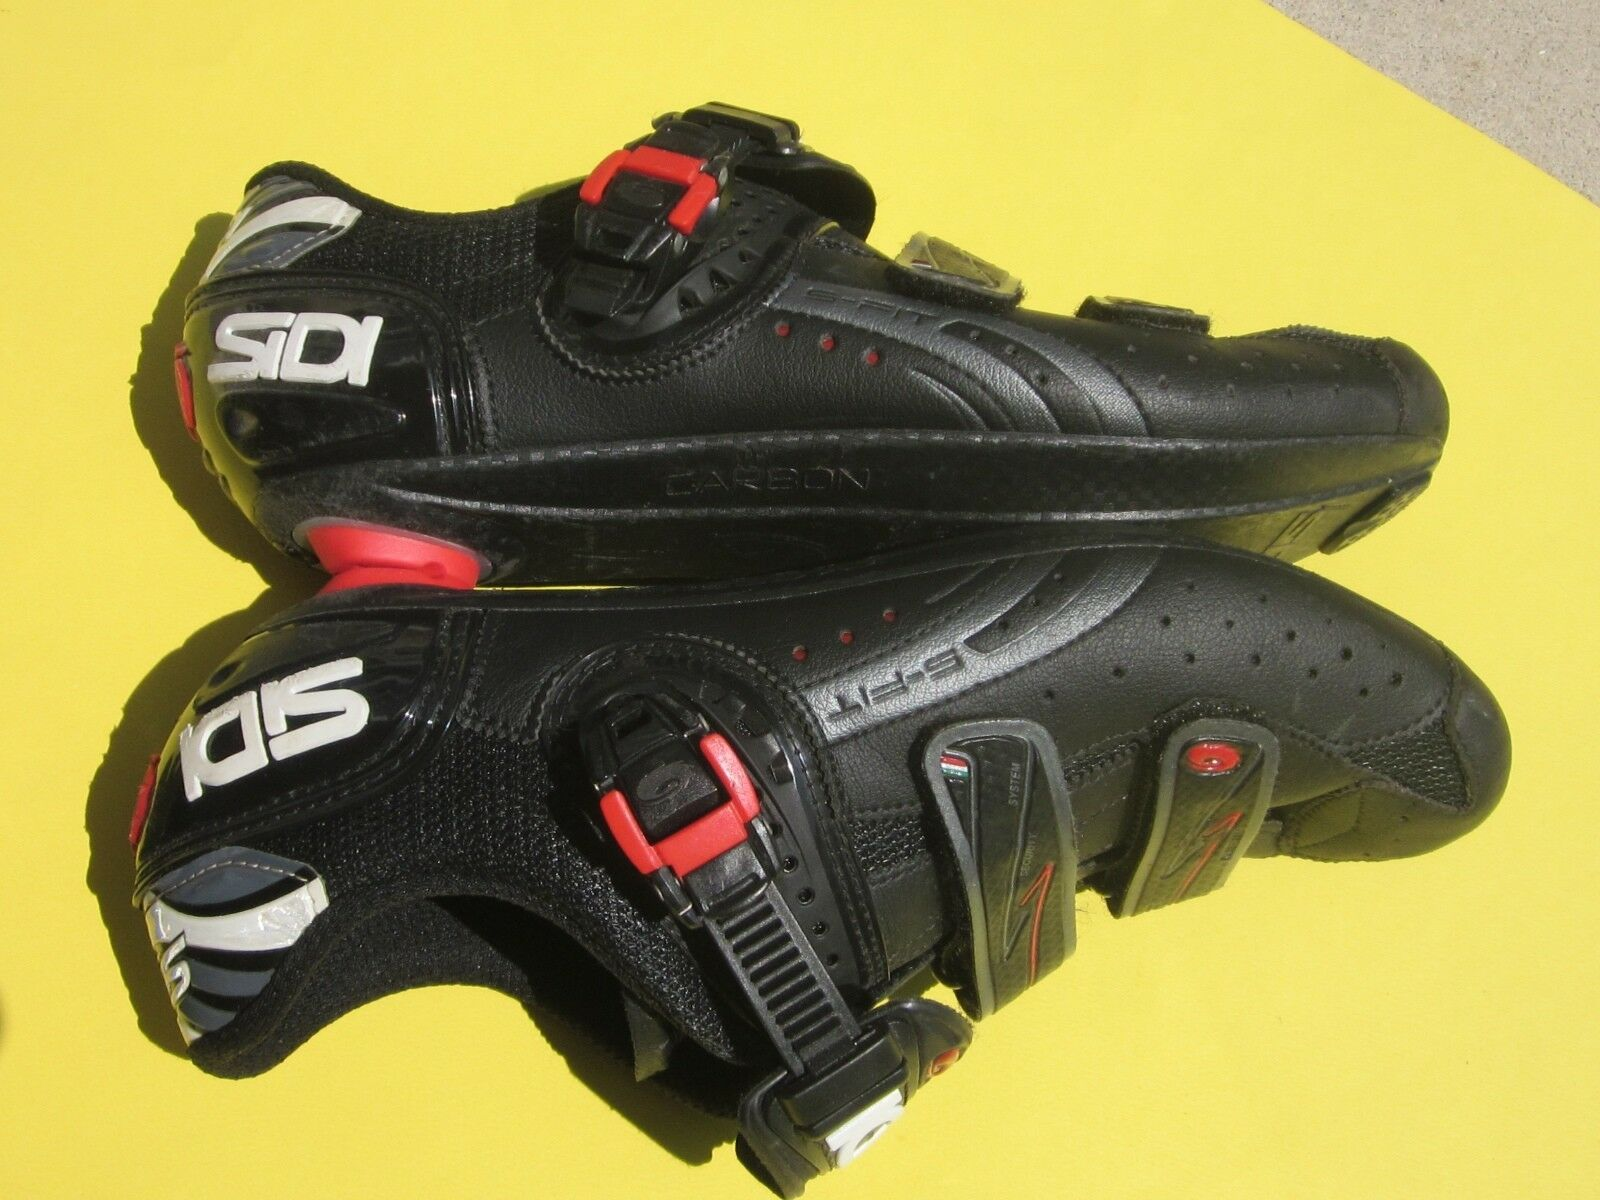 Sidi Genius 5 Fit Carbon mens 43.5 Euro   US-9.5 3-Bolt Road Schuhe Lorica schwarz